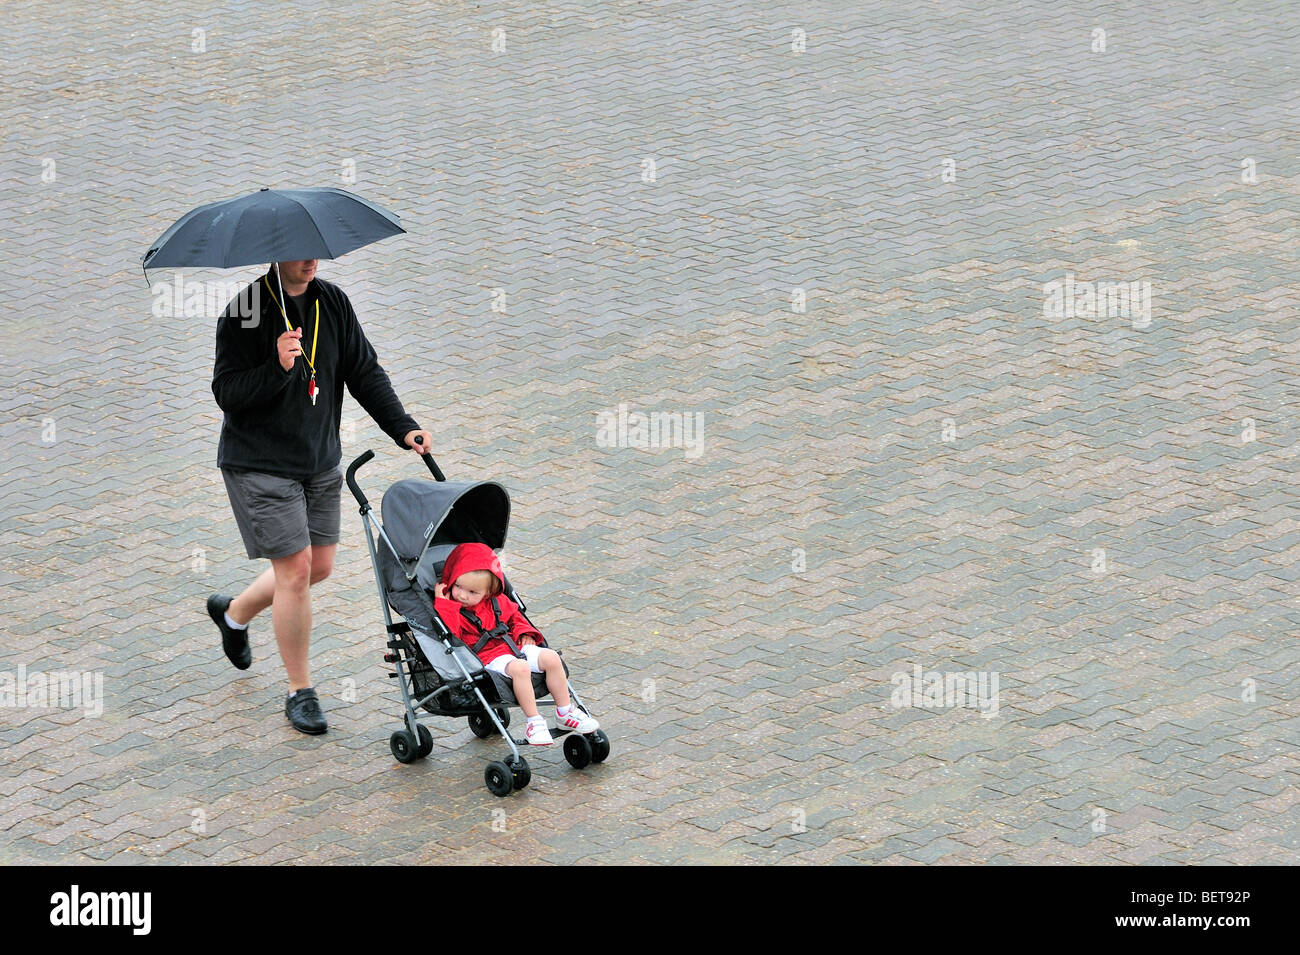 Dad with umbrella and baby in pram walking over promenade along the coast at seaside resort on rainy day during - Stock Image